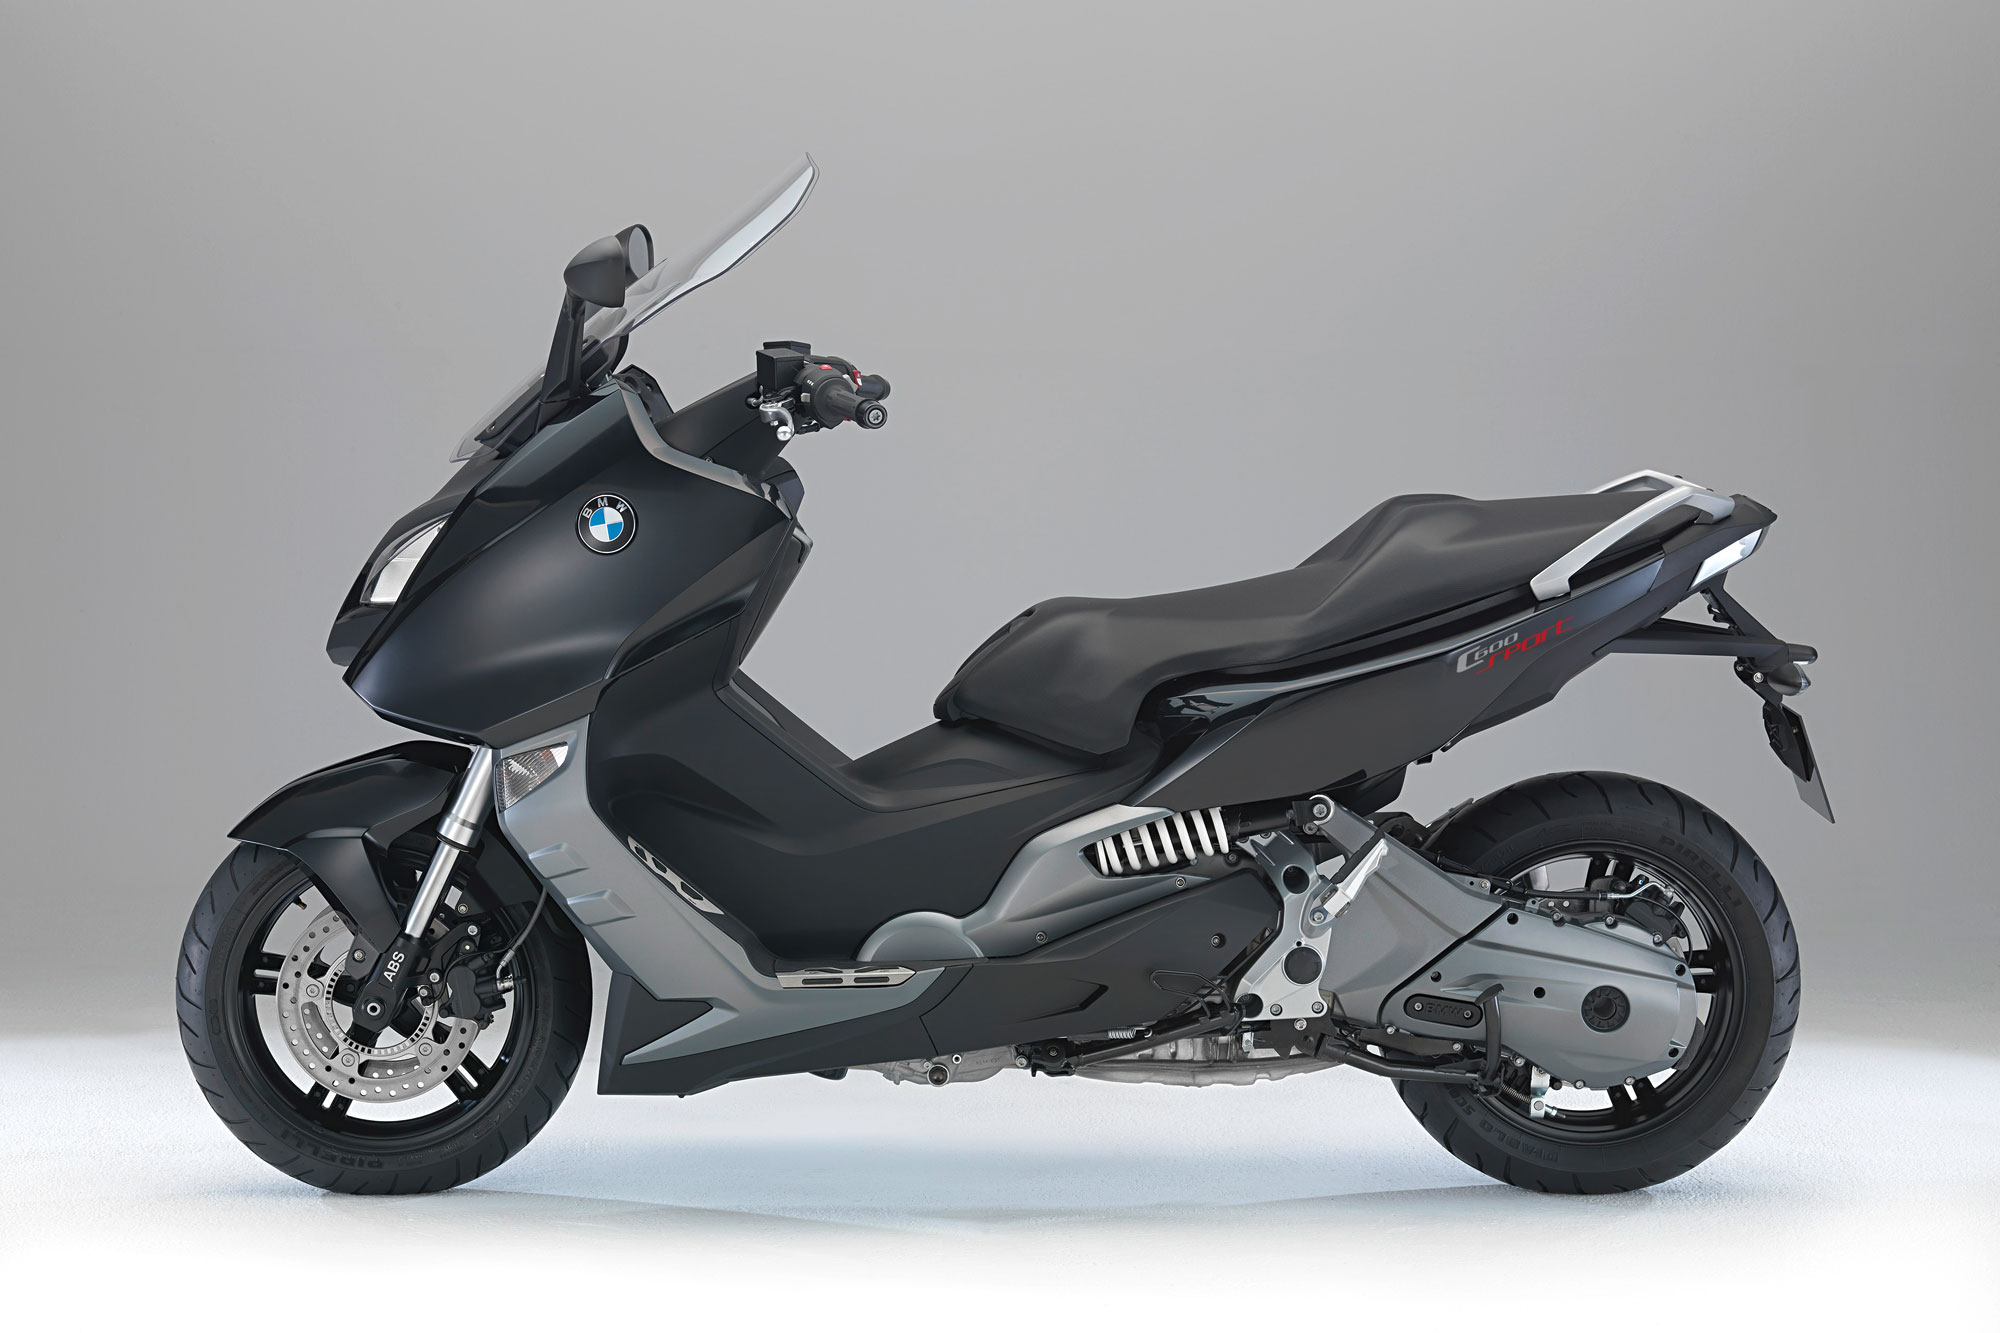 bmw c 600 sport specs 2011 2012 autoevolution. Black Bedroom Furniture Sets. Home Design Ideas